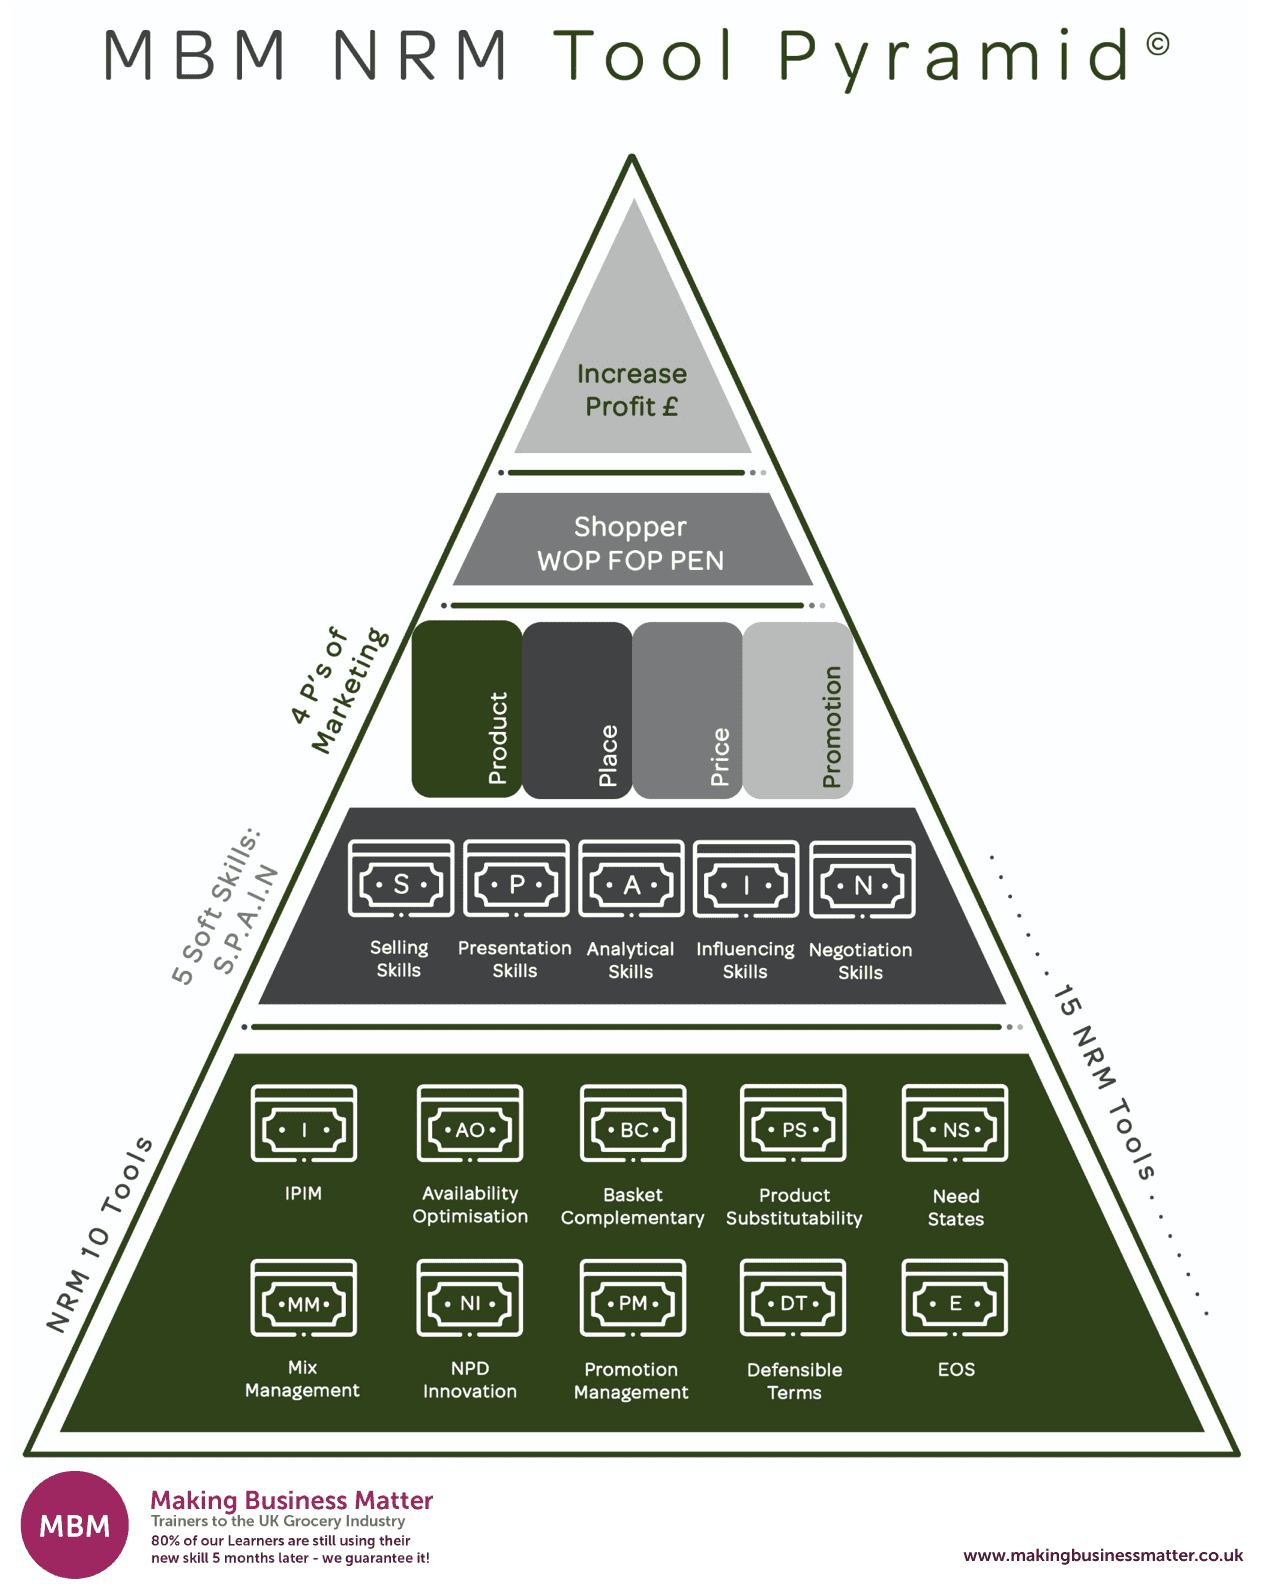 MBM NRM Tool Pyramid, , Net Revenue Management